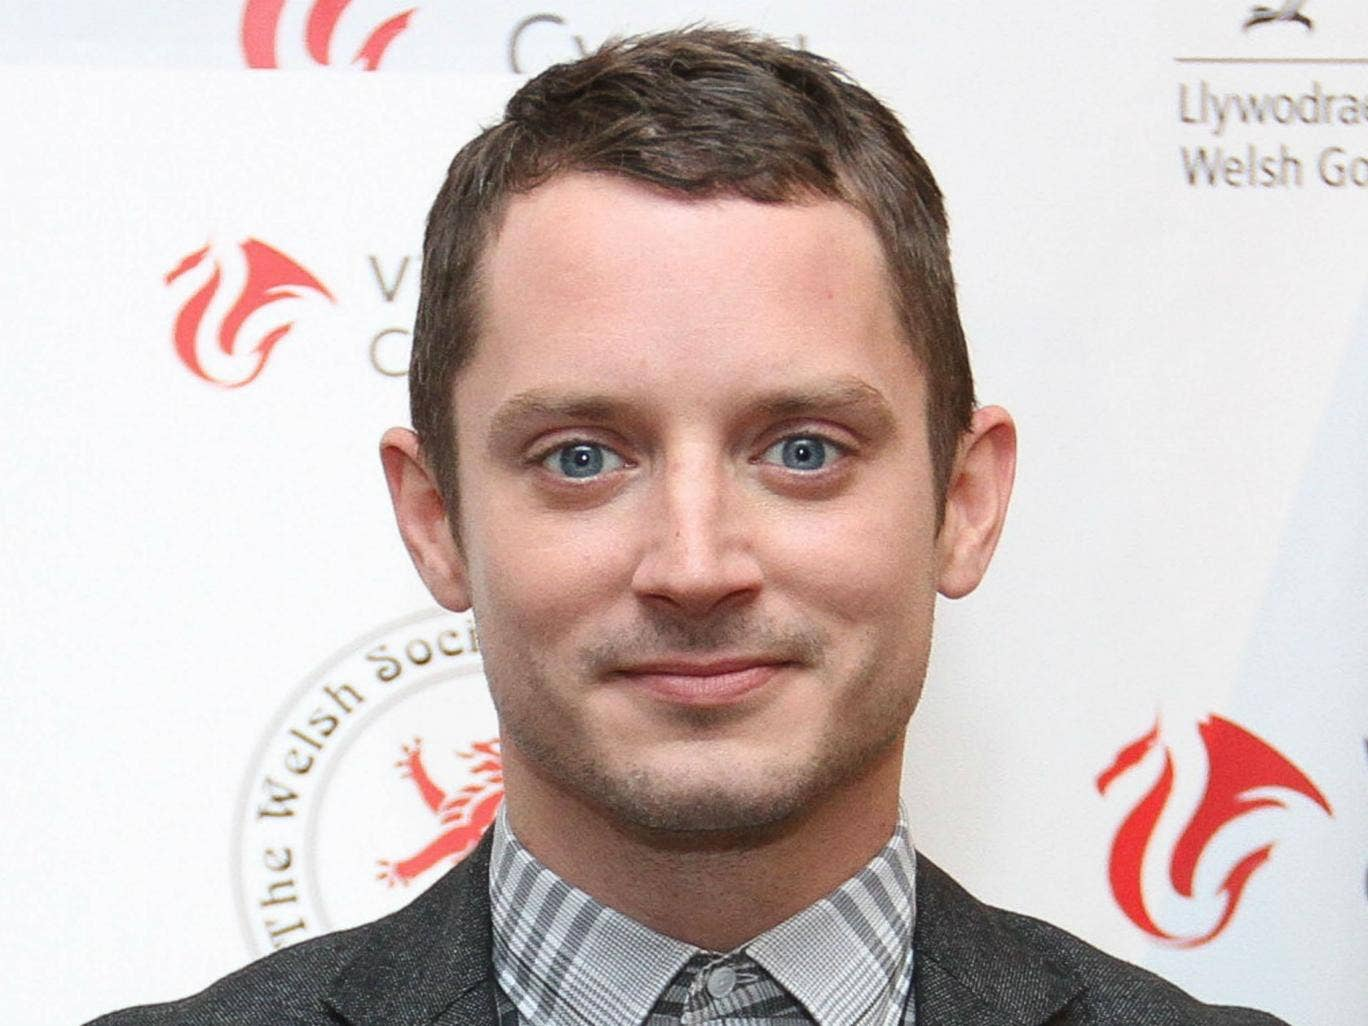 Elijah Wood wades into Turkish court investigation into whether comparing President Erdoğan to Gollum is offensive